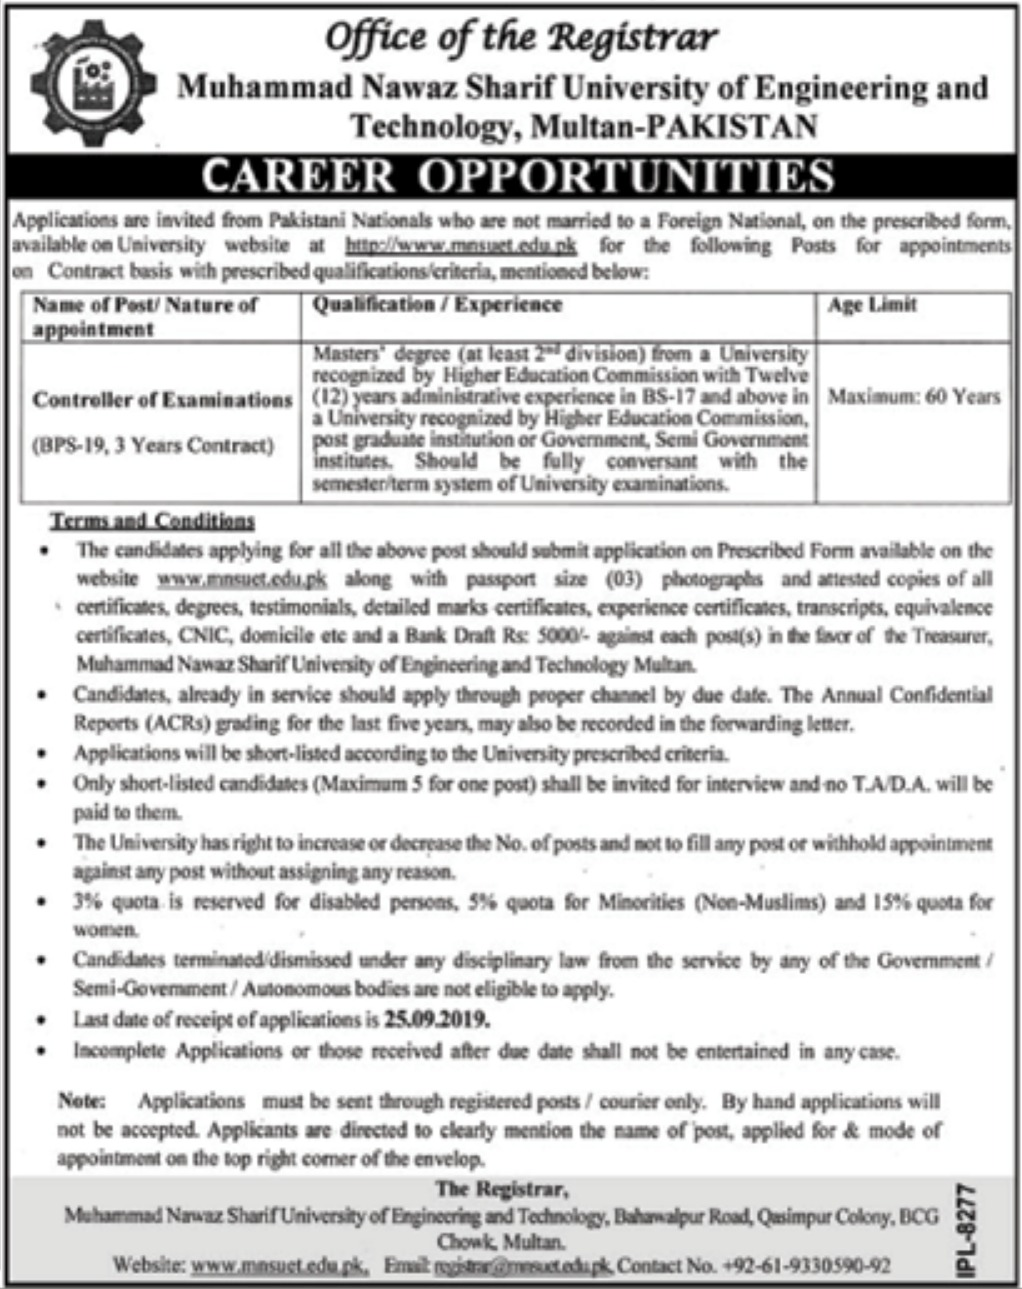 Muhammad Nawaz Sharif University of Engineering & Technology MNSUET Multan Jobs 2019